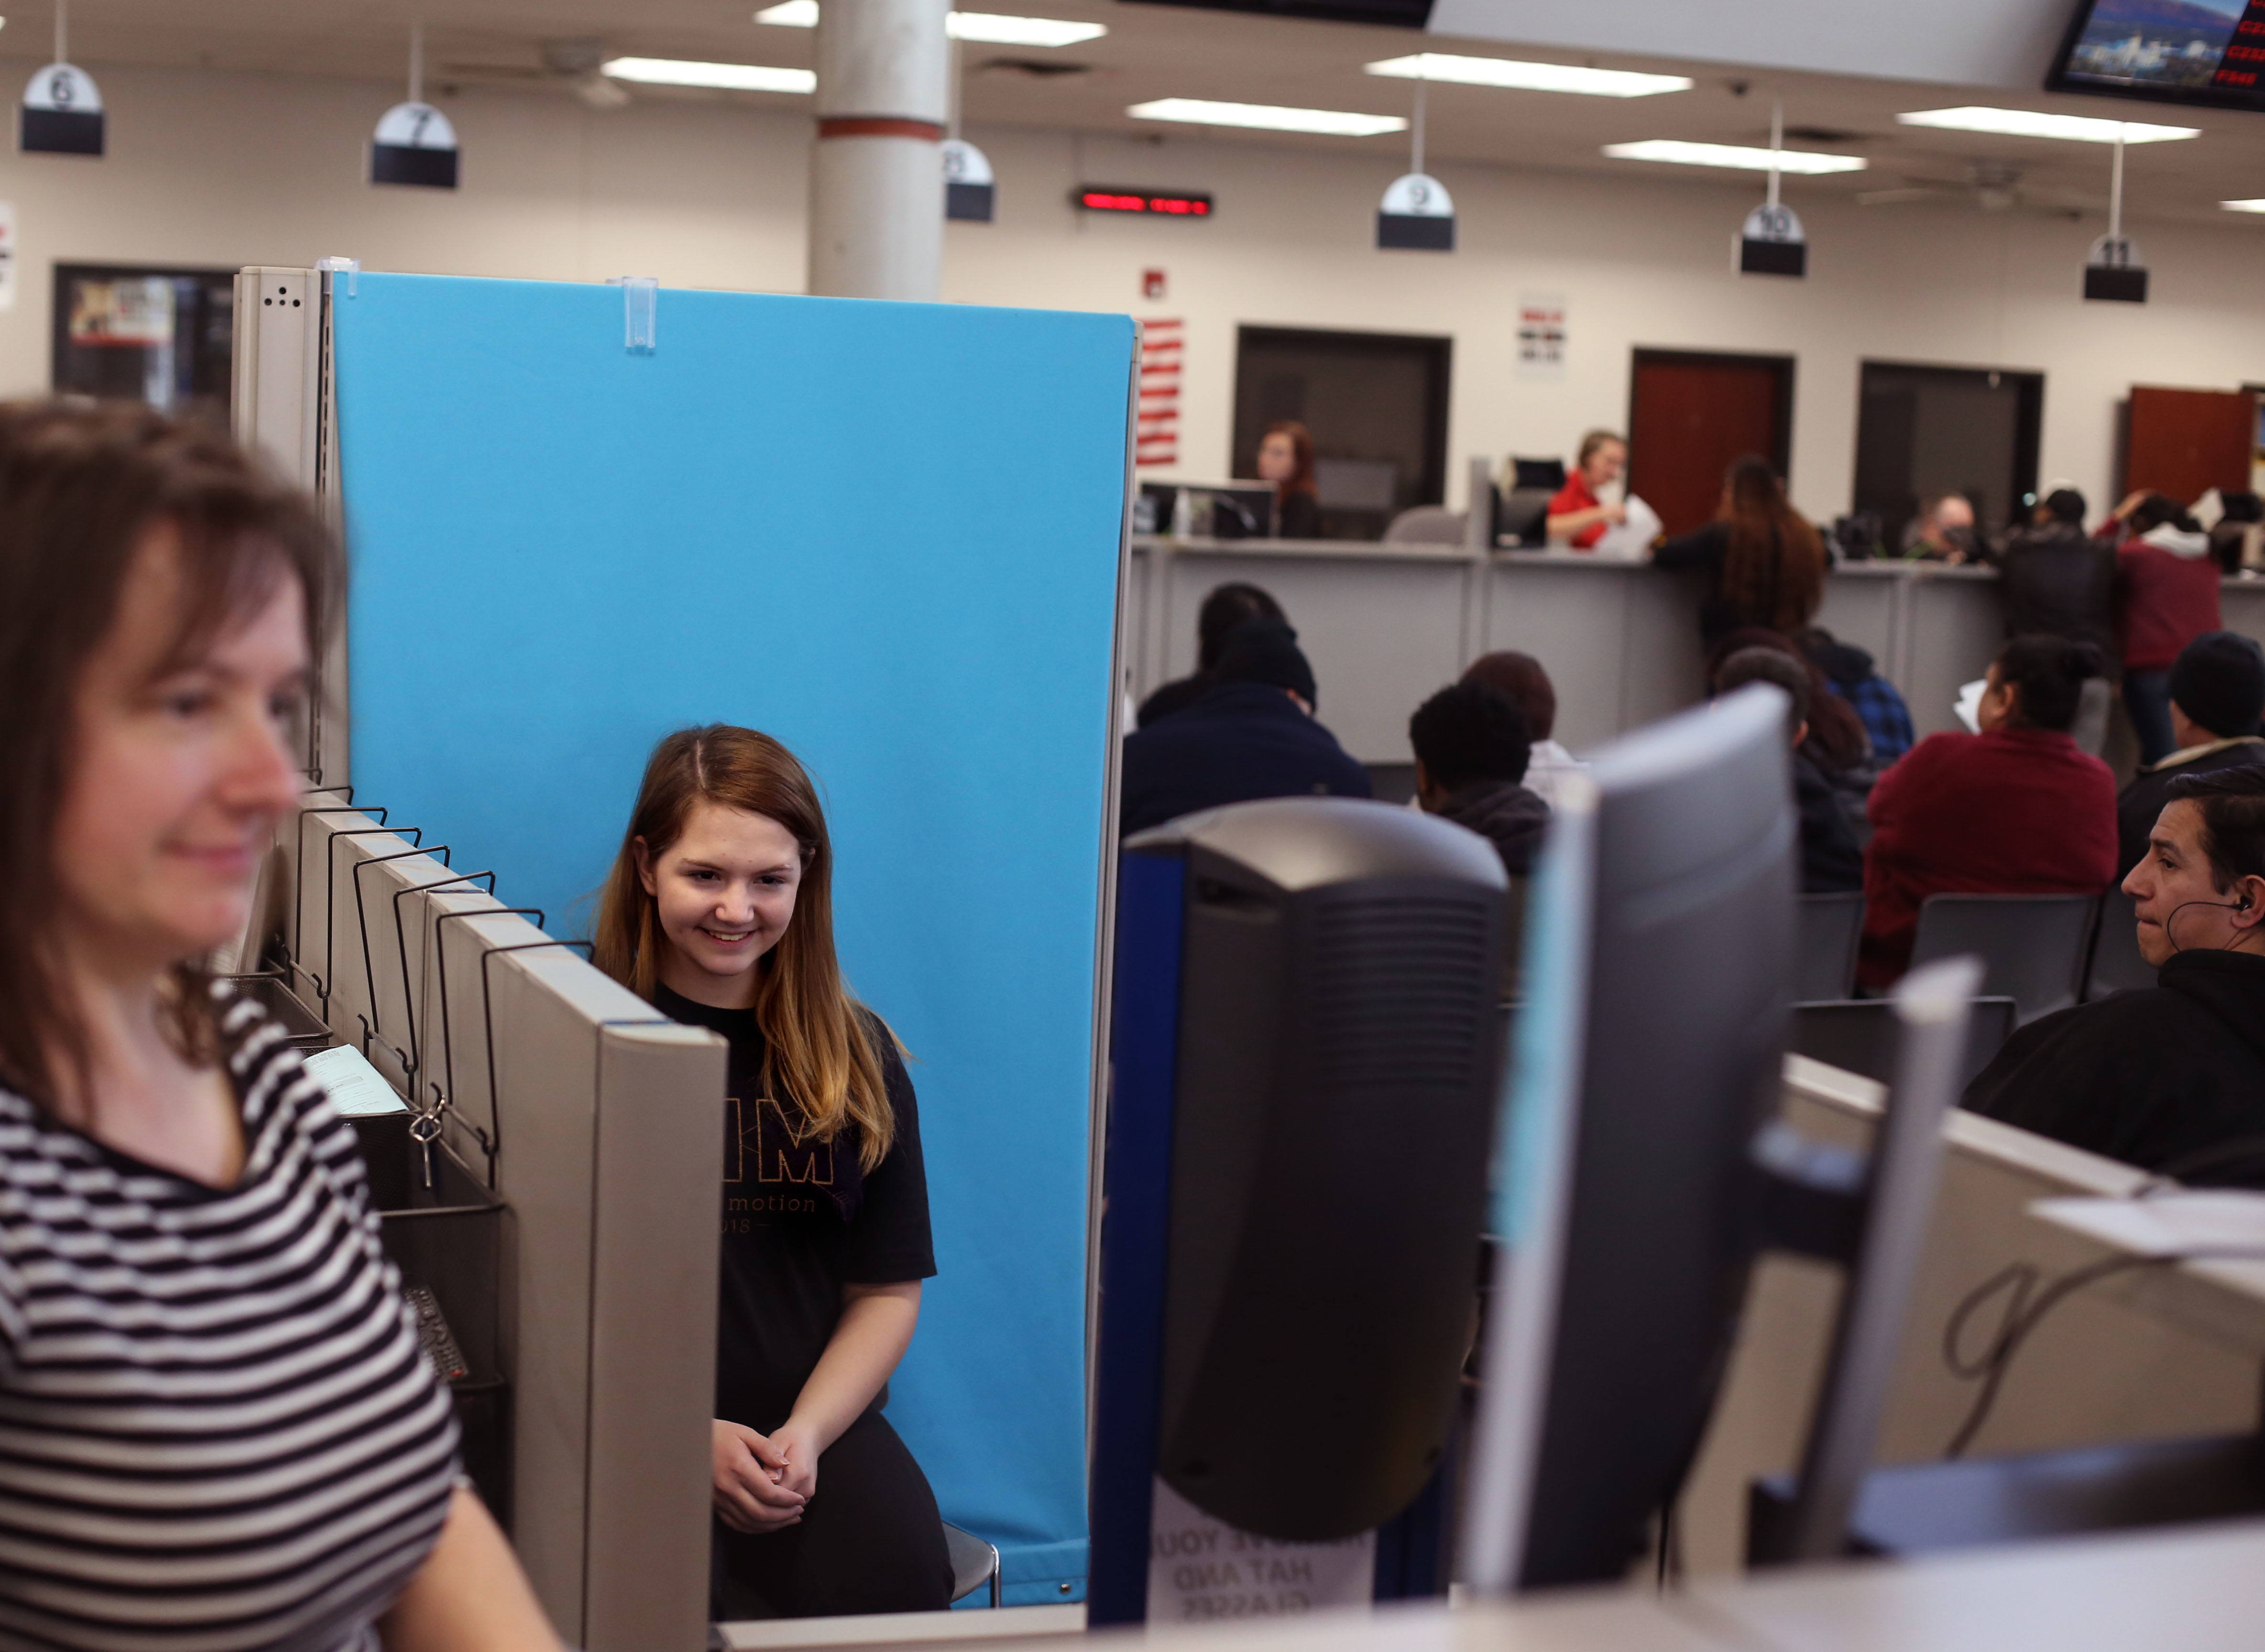 Nyla Parks has her photograph taken for her driver's license at the driver license division in West Valley City on Wednesday, Jan. 30, 2019.